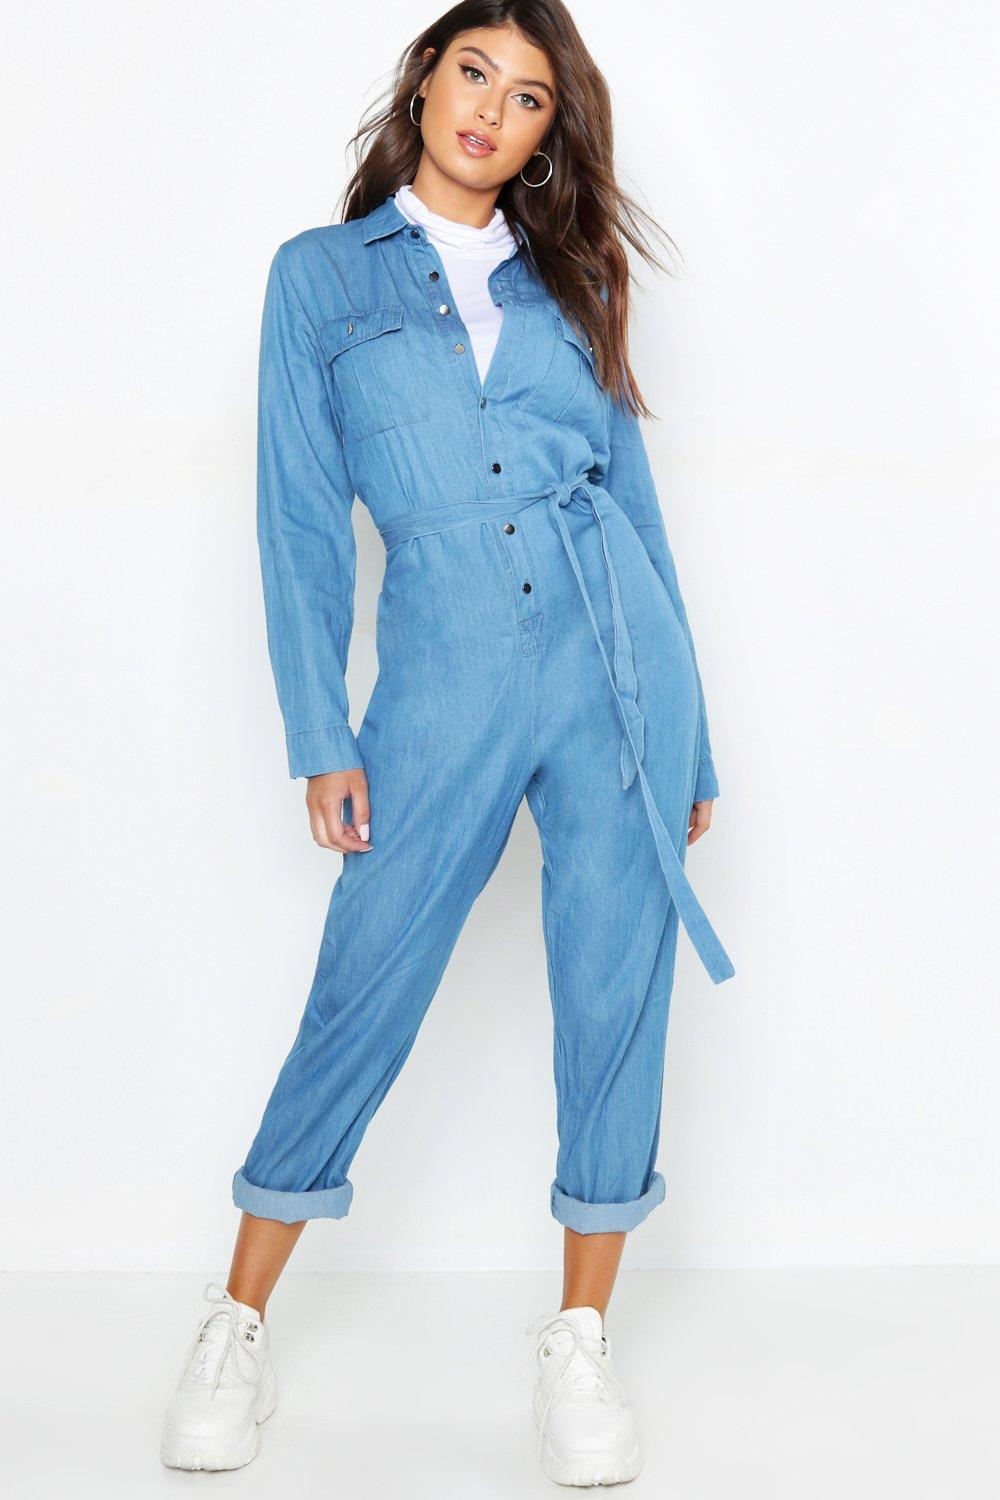 c471f39d5dd Tie Waist Utility Denim Boilersuit. Hover to zoom